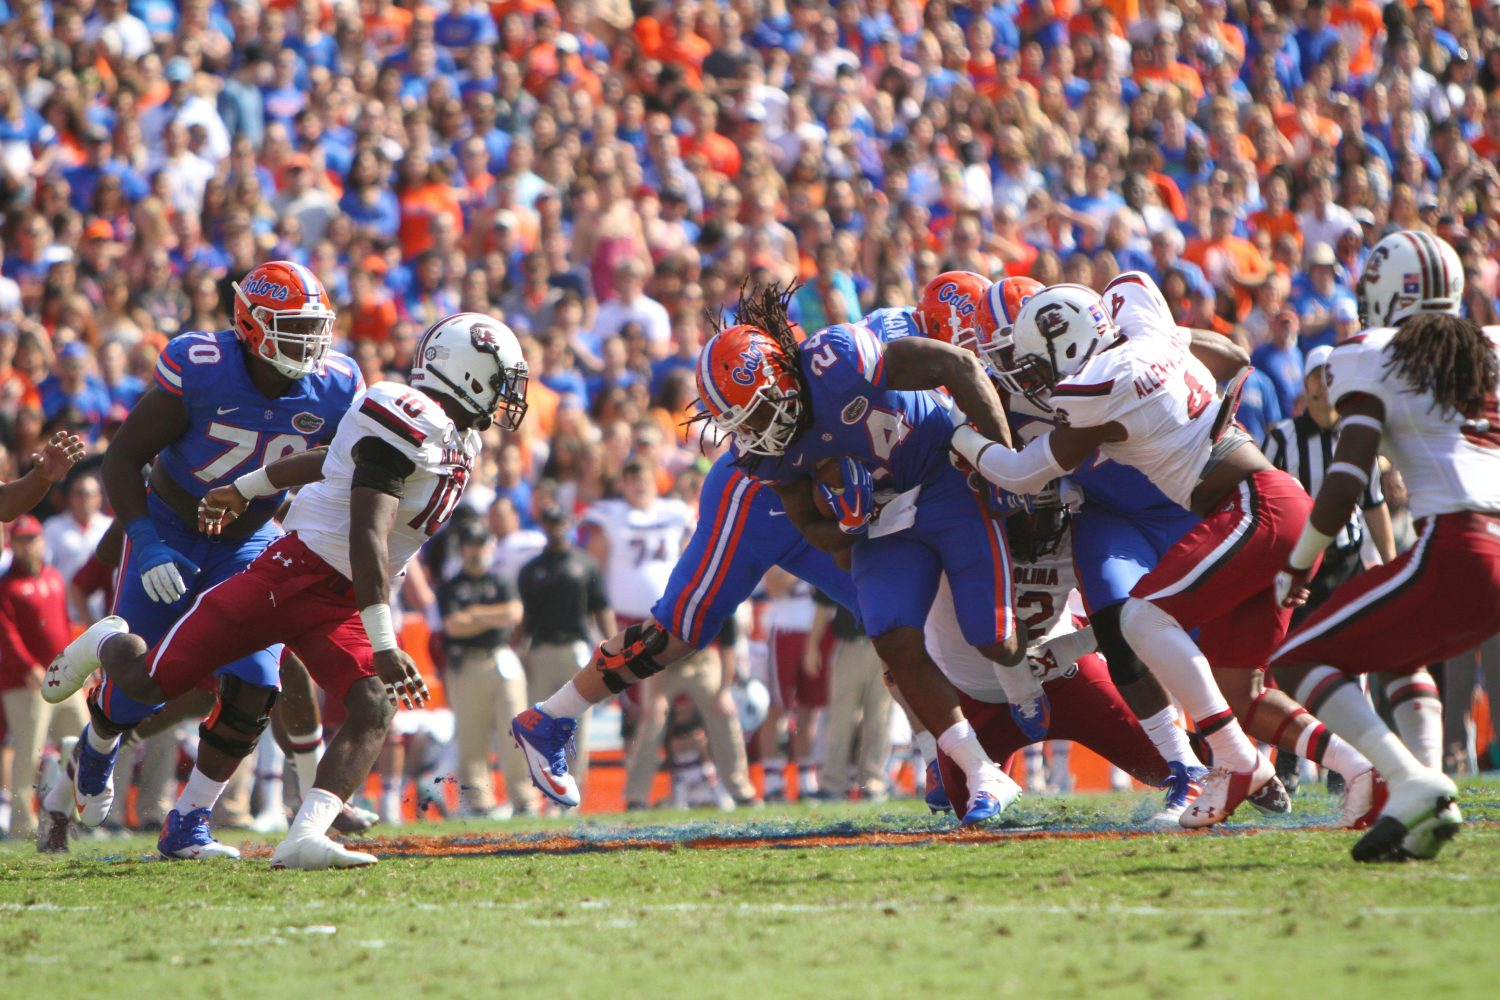 Florida running back Matt Jones powers his way through the opposing defense.